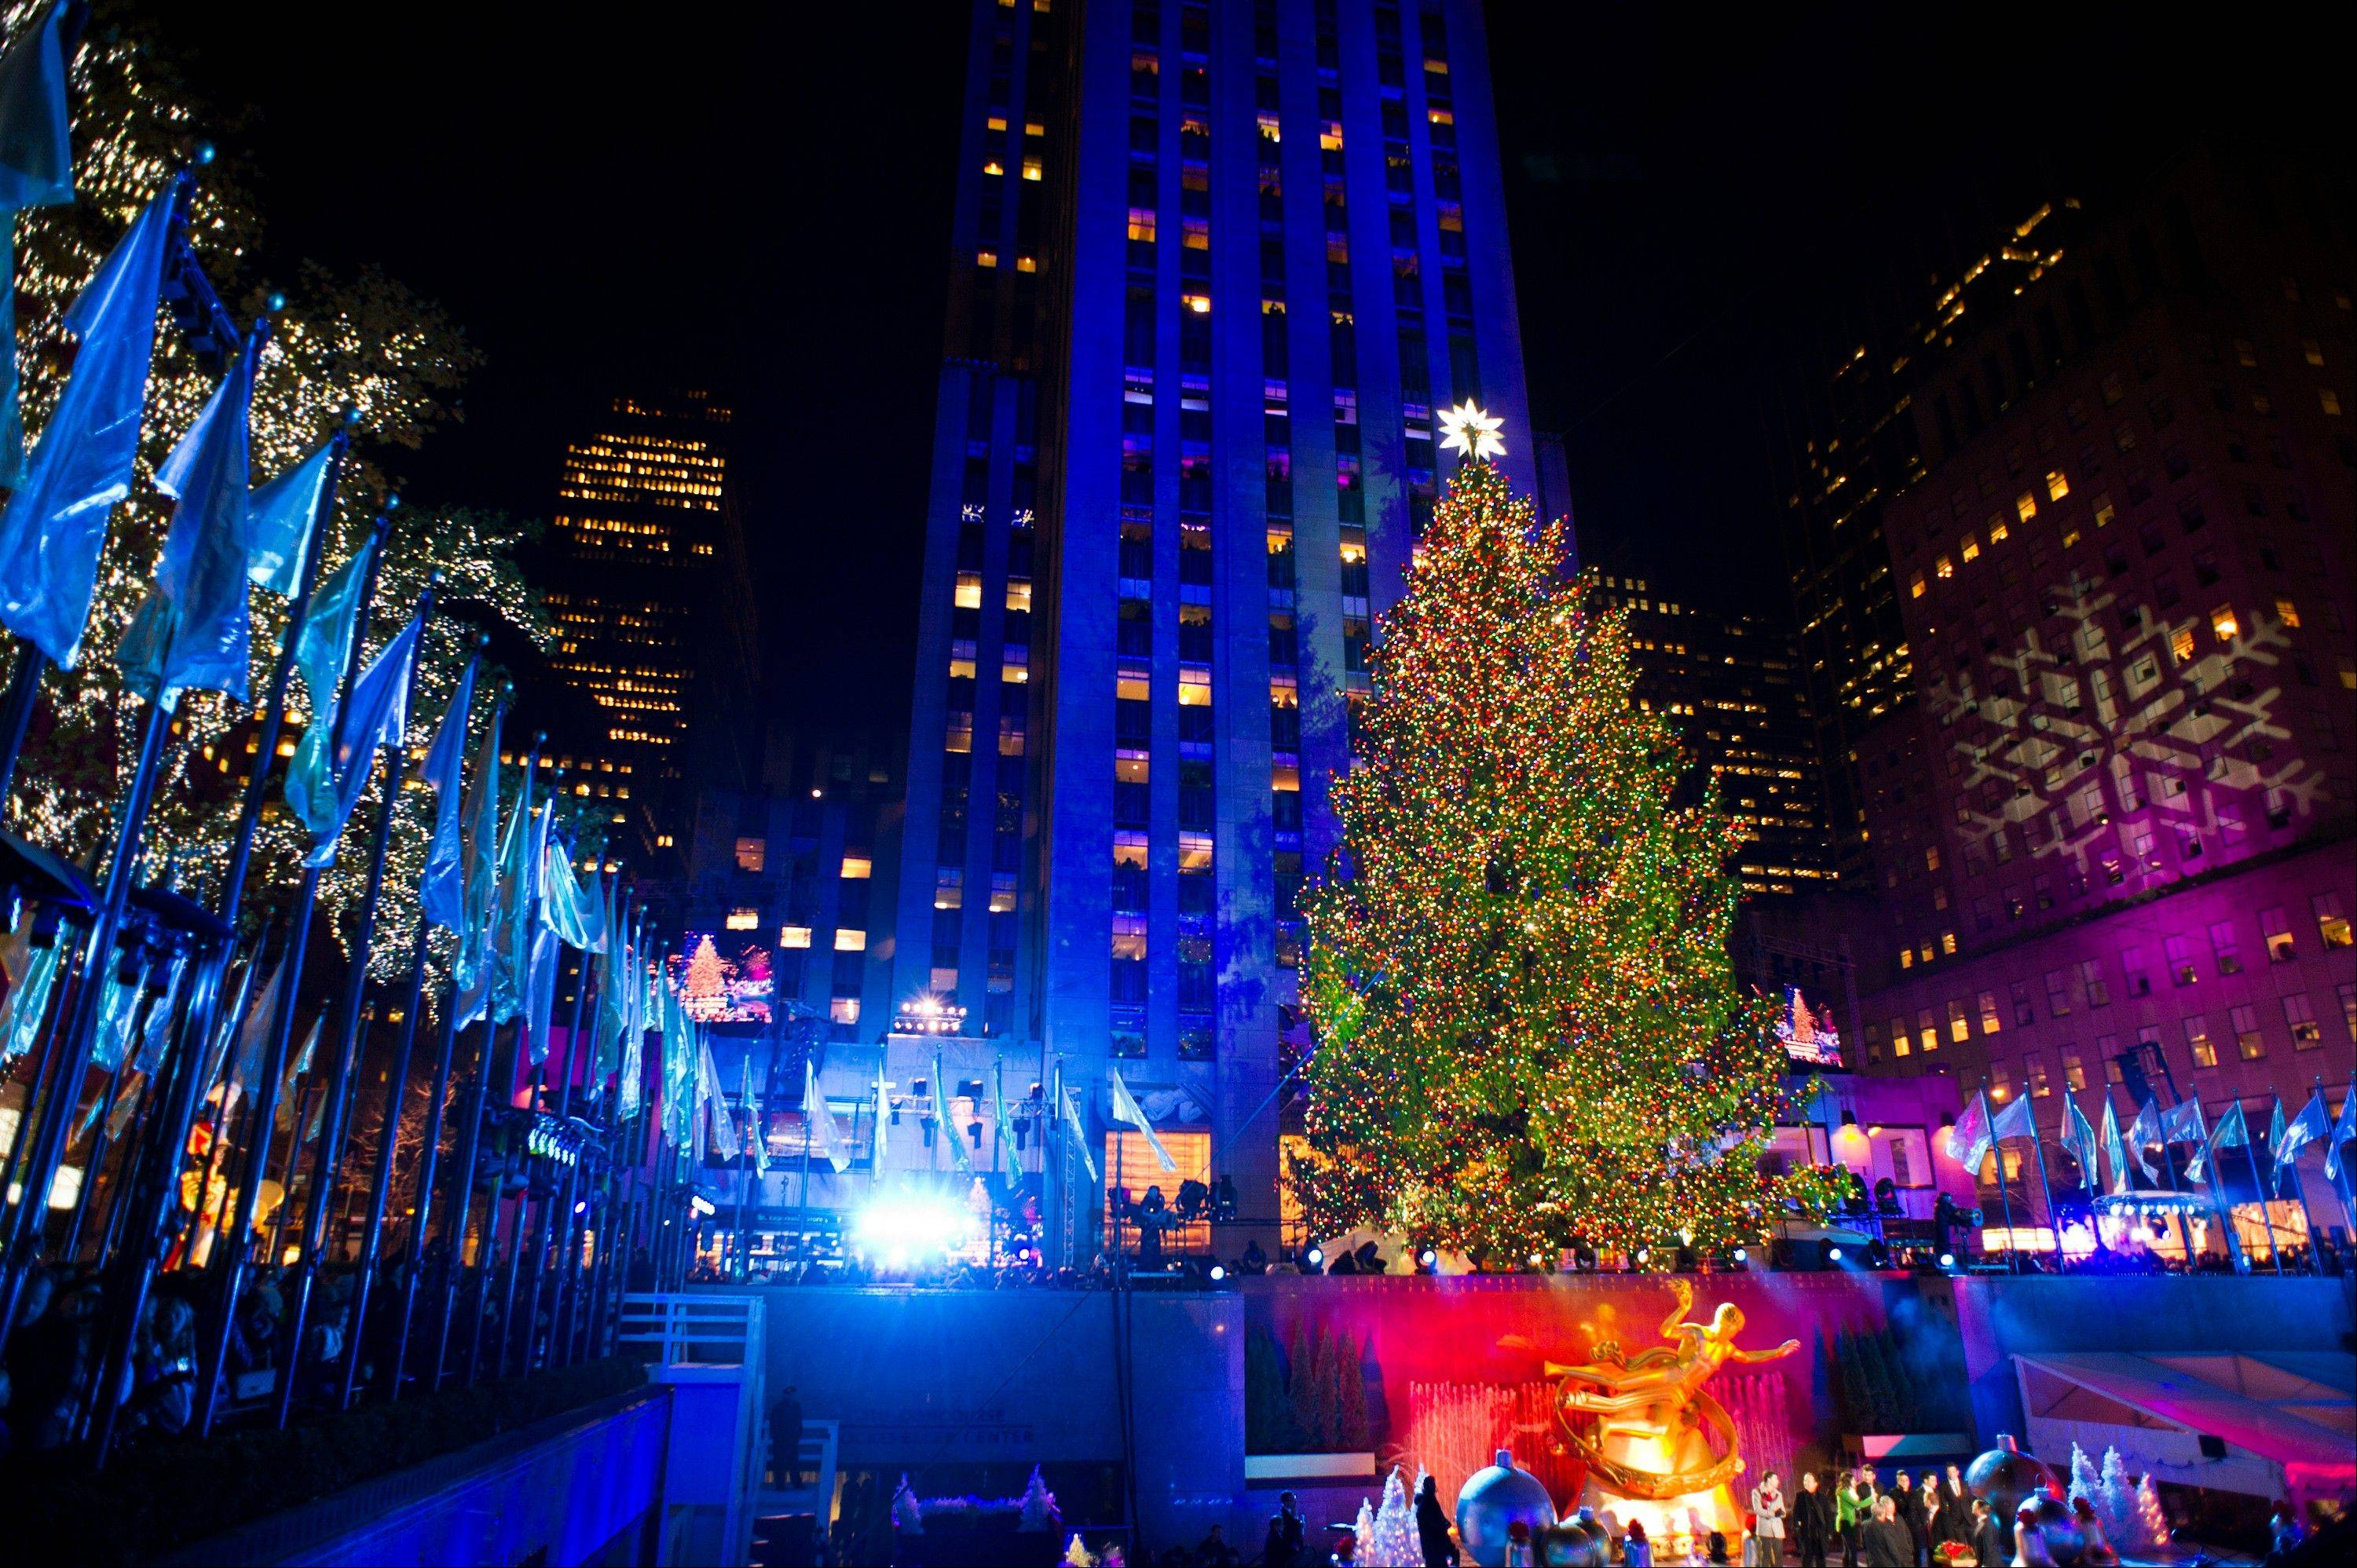 The 80-foot-tall Rockefeller Center Christmas tree is lit using 45,000 energy efficient LED lights in New York.